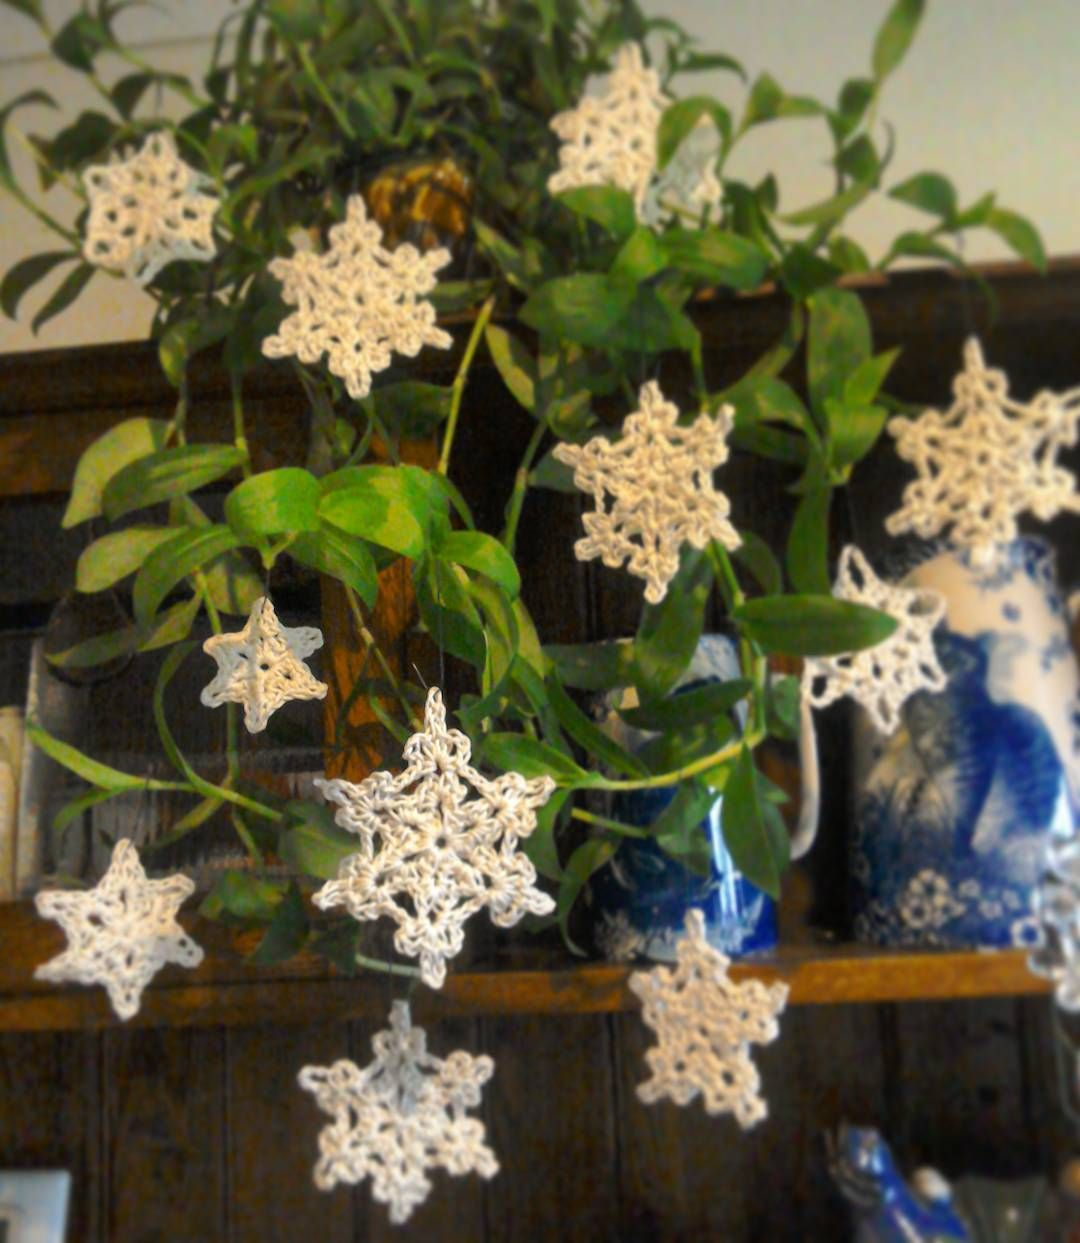 Afternoon IG. Grey old day here, so I've dug out the decorations. Maybe a little brandy, some Christmas tunes and make a start! Made these snowflakes last year. Hope you are having a great Saturday 🌟  #crochet #crochetsnowflake #crochetchristmas #blingupthehouseplants